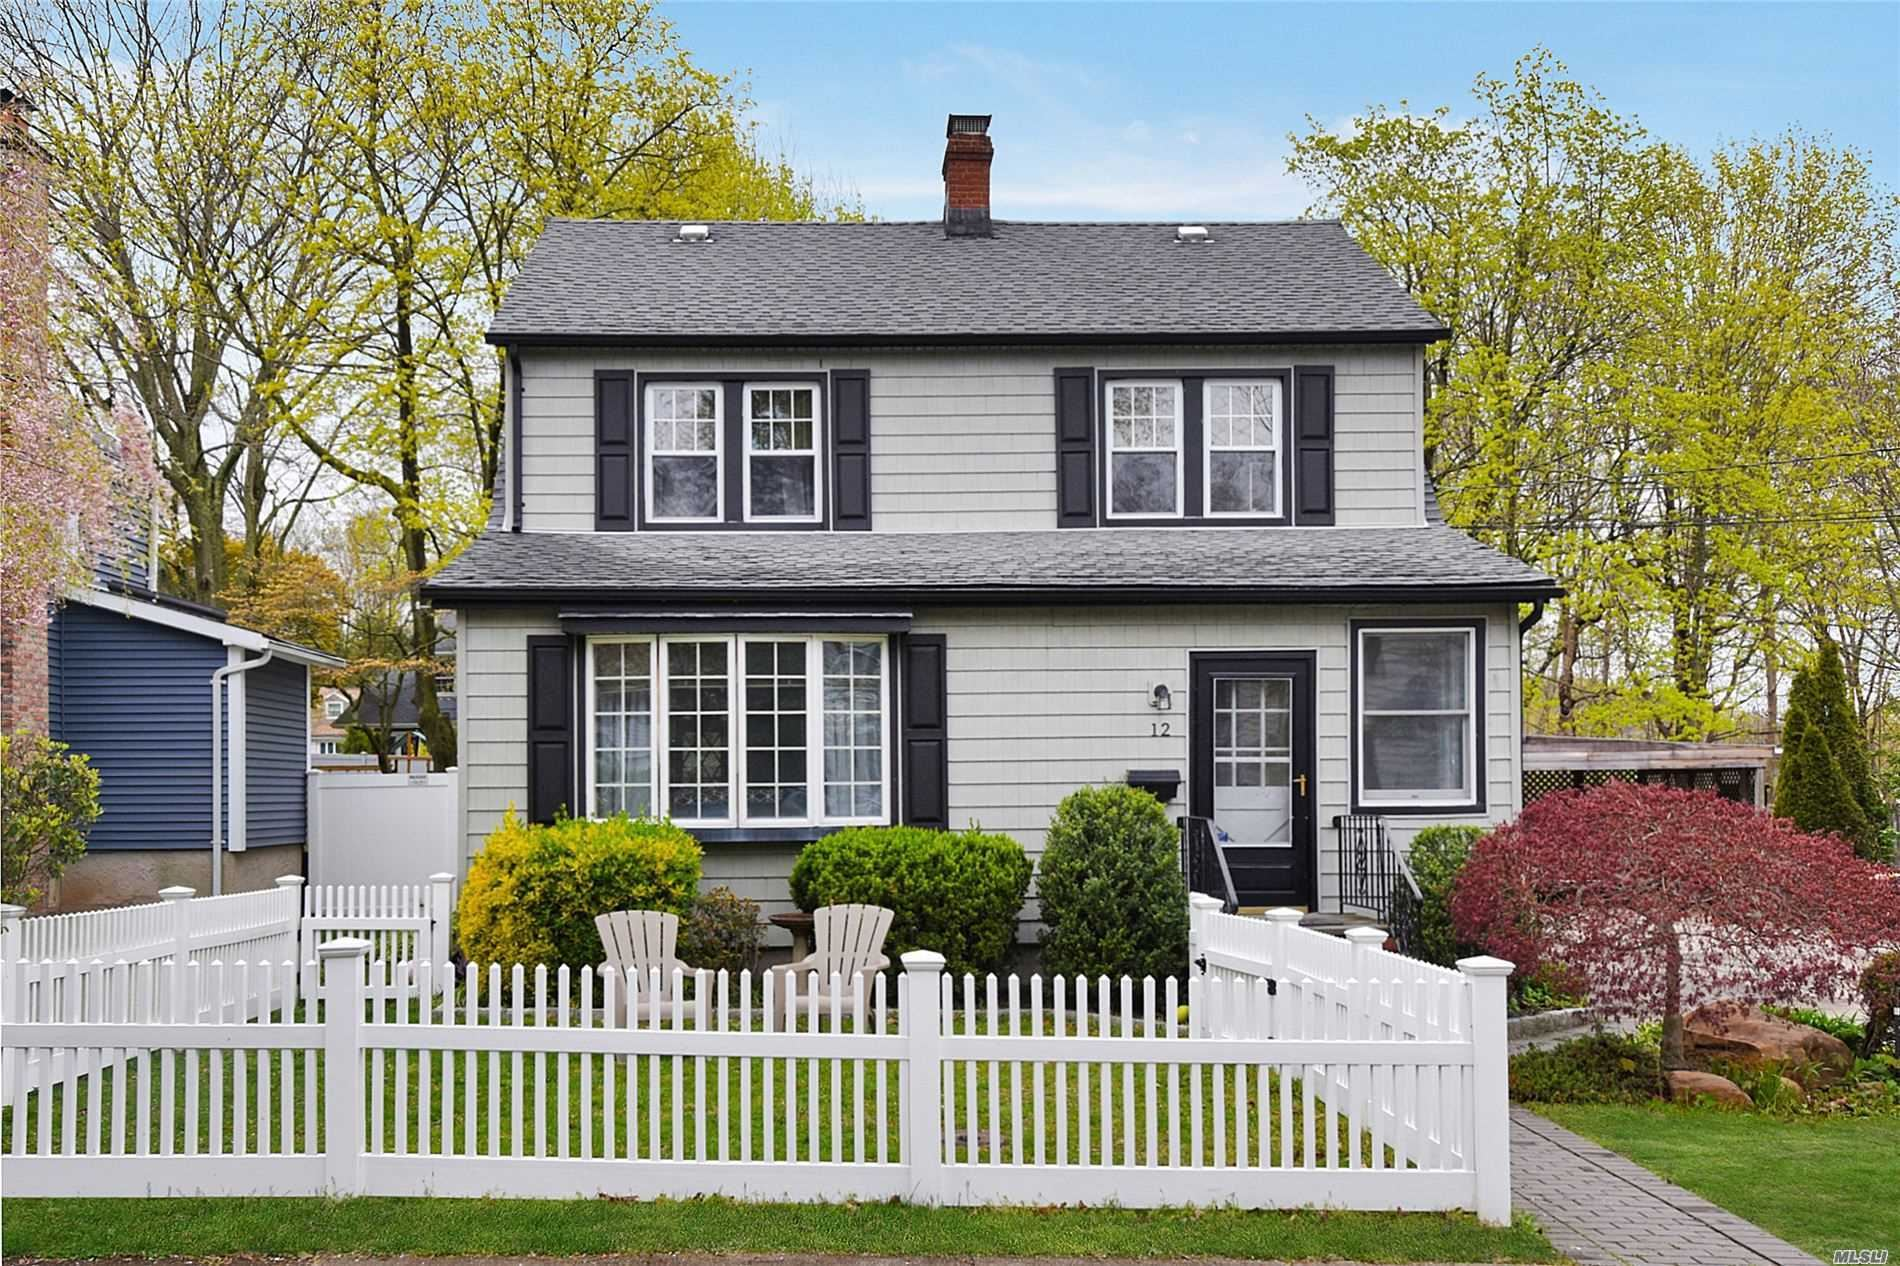 Photo of 12 Summers Street, Oyster Bay, NY 11771 (MLS # 3212823)